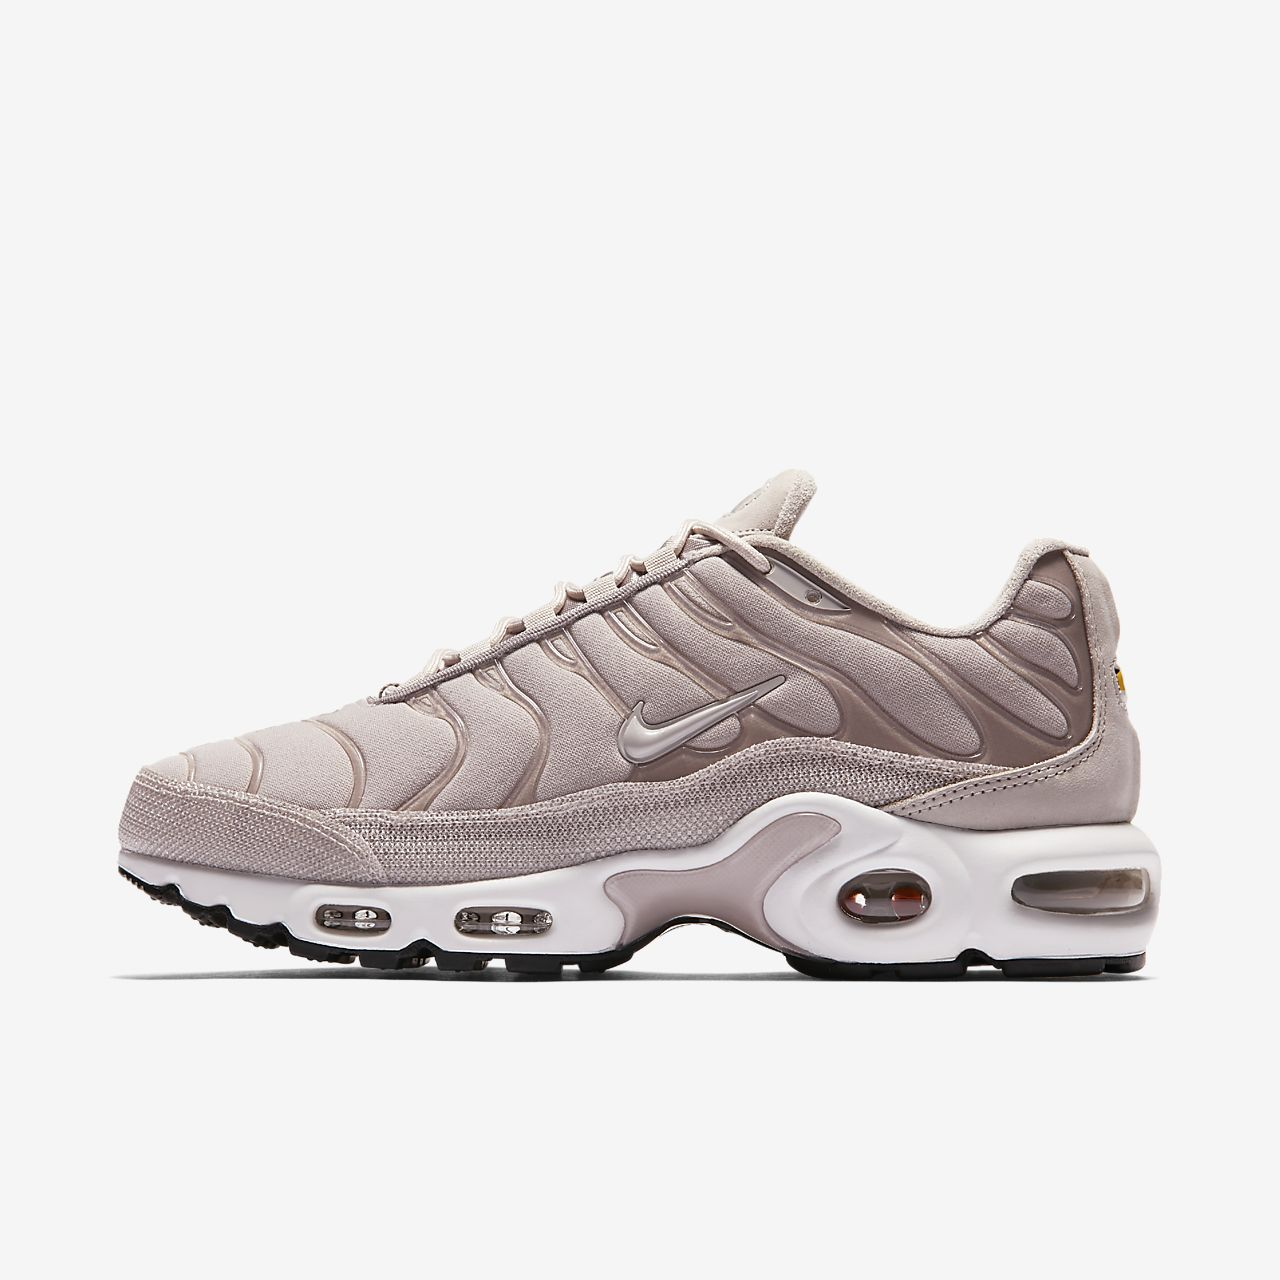 nike air max plus premium women 39 s shoe lu. Black Bedroom Furniture Sets. Home Design Ideas